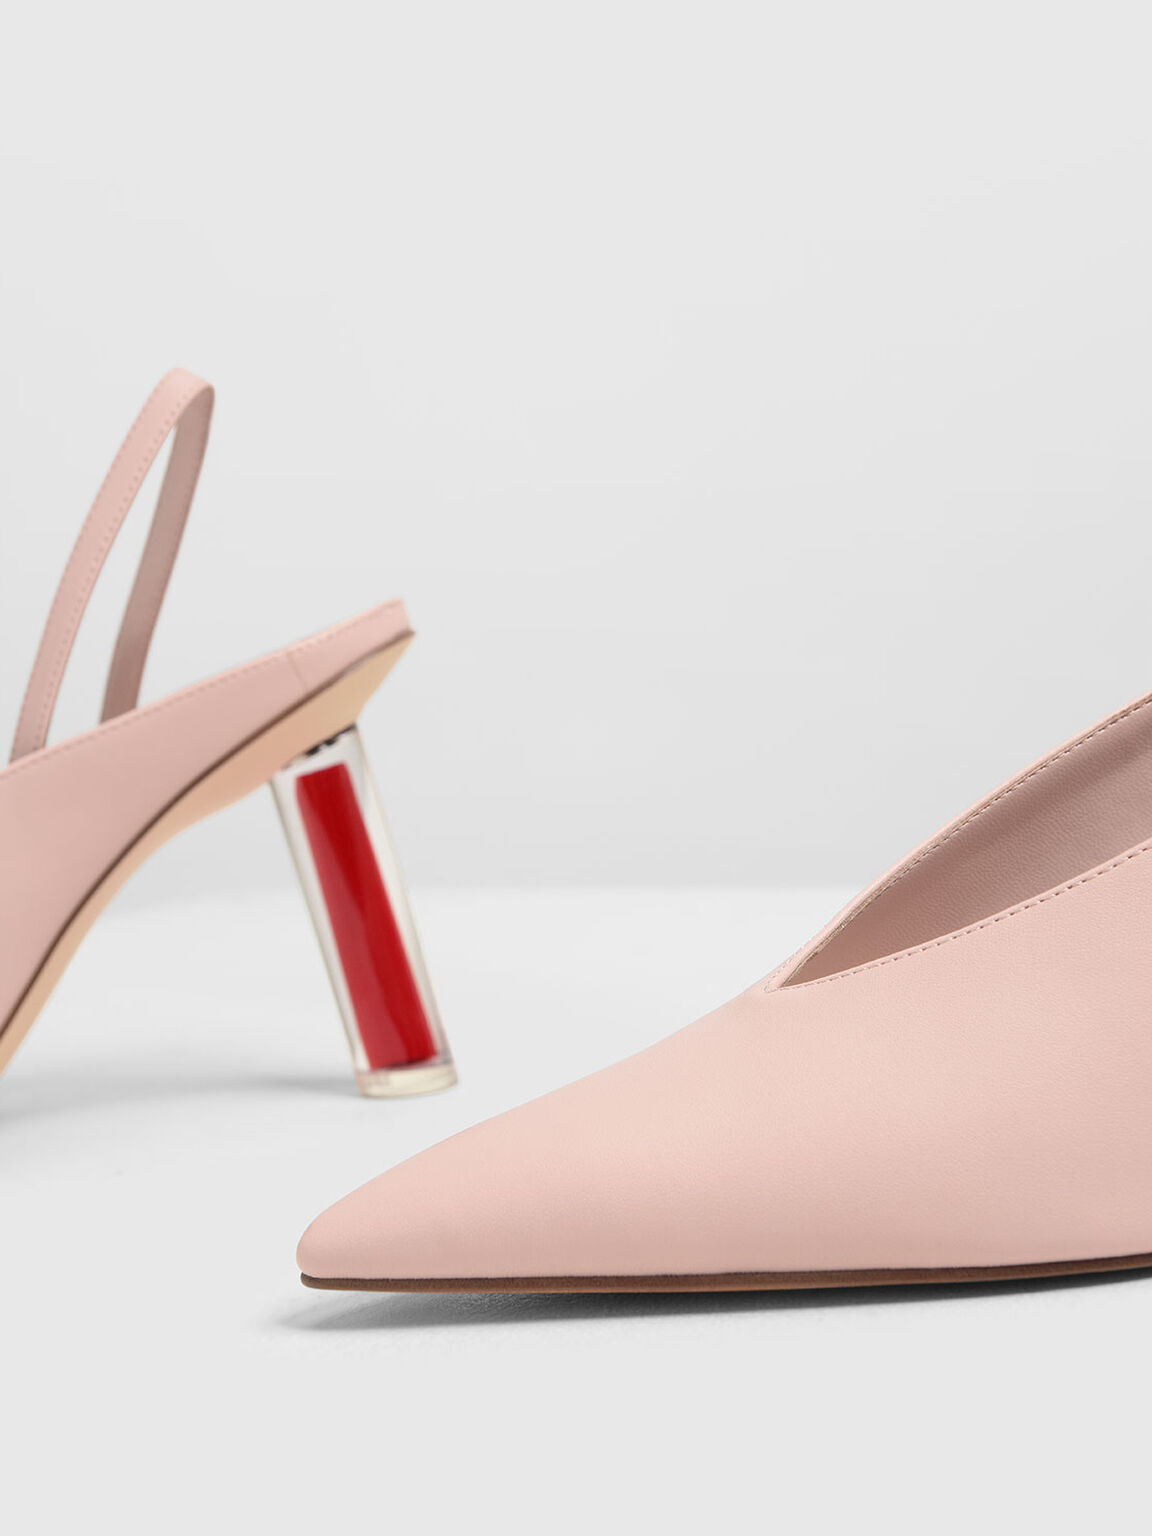 V-Cut Sculptural Heel Slingbacks, Nude, hi-res